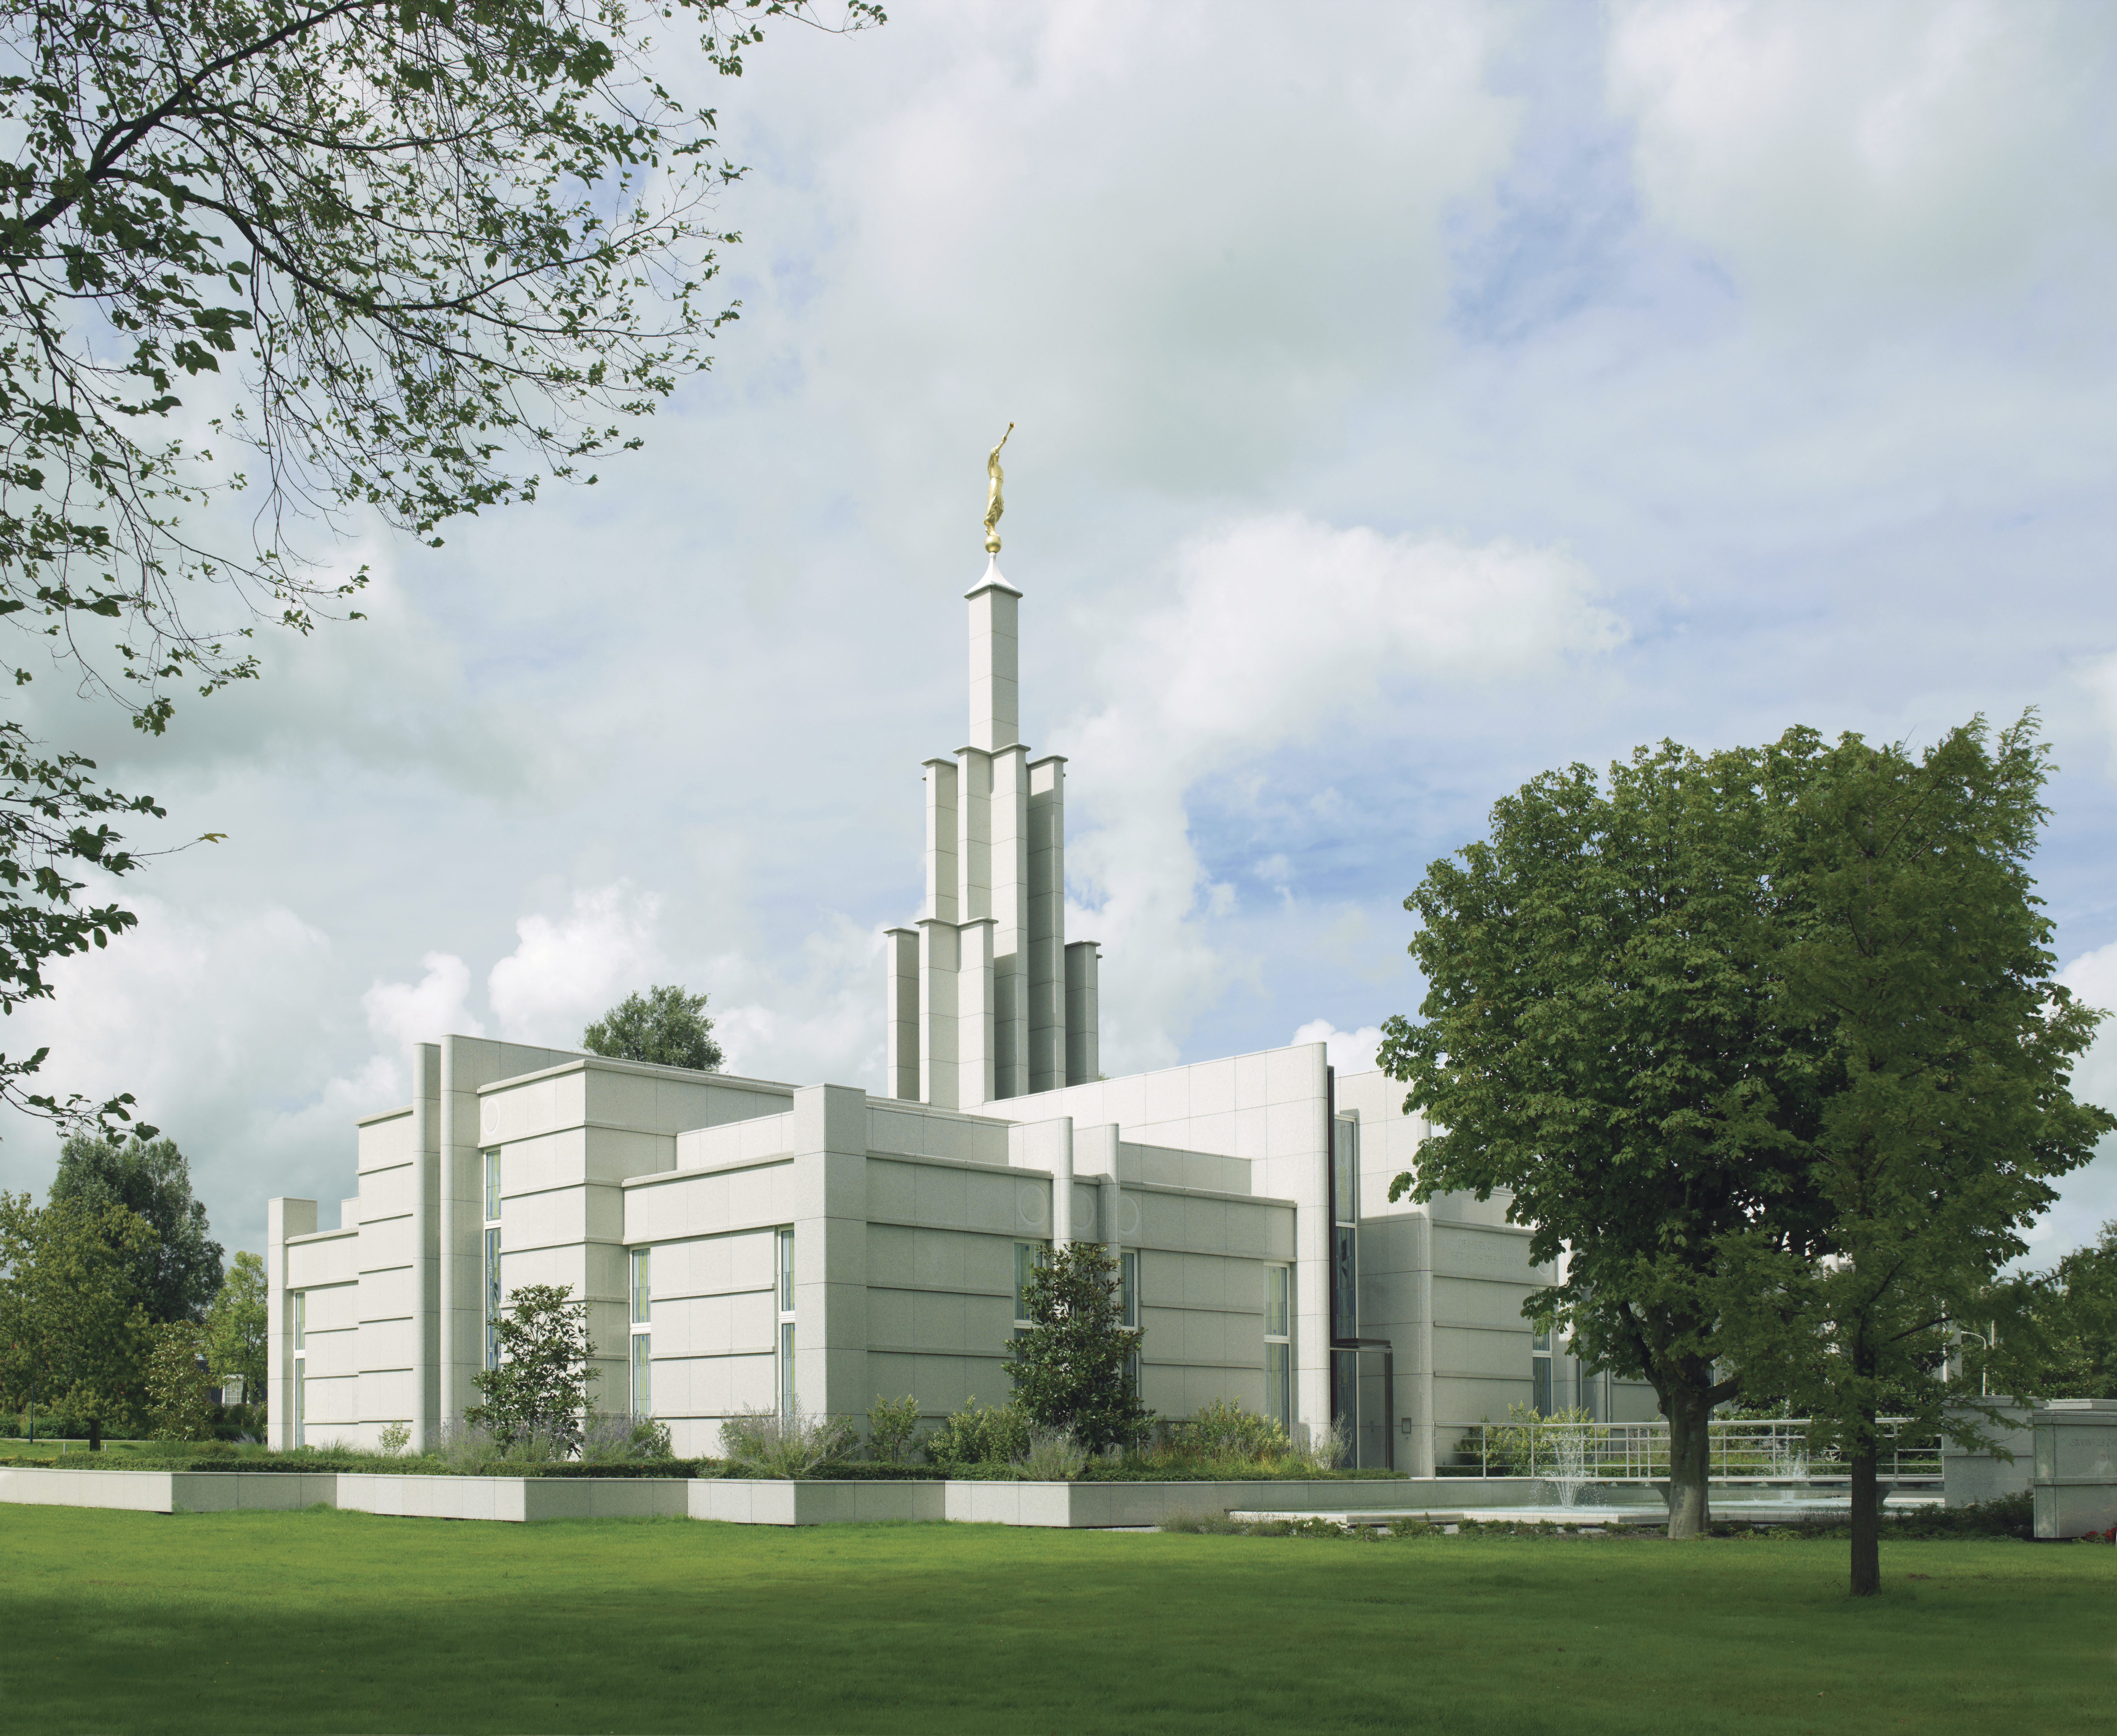 The Hague Netherlands Temple on a cloudy day.